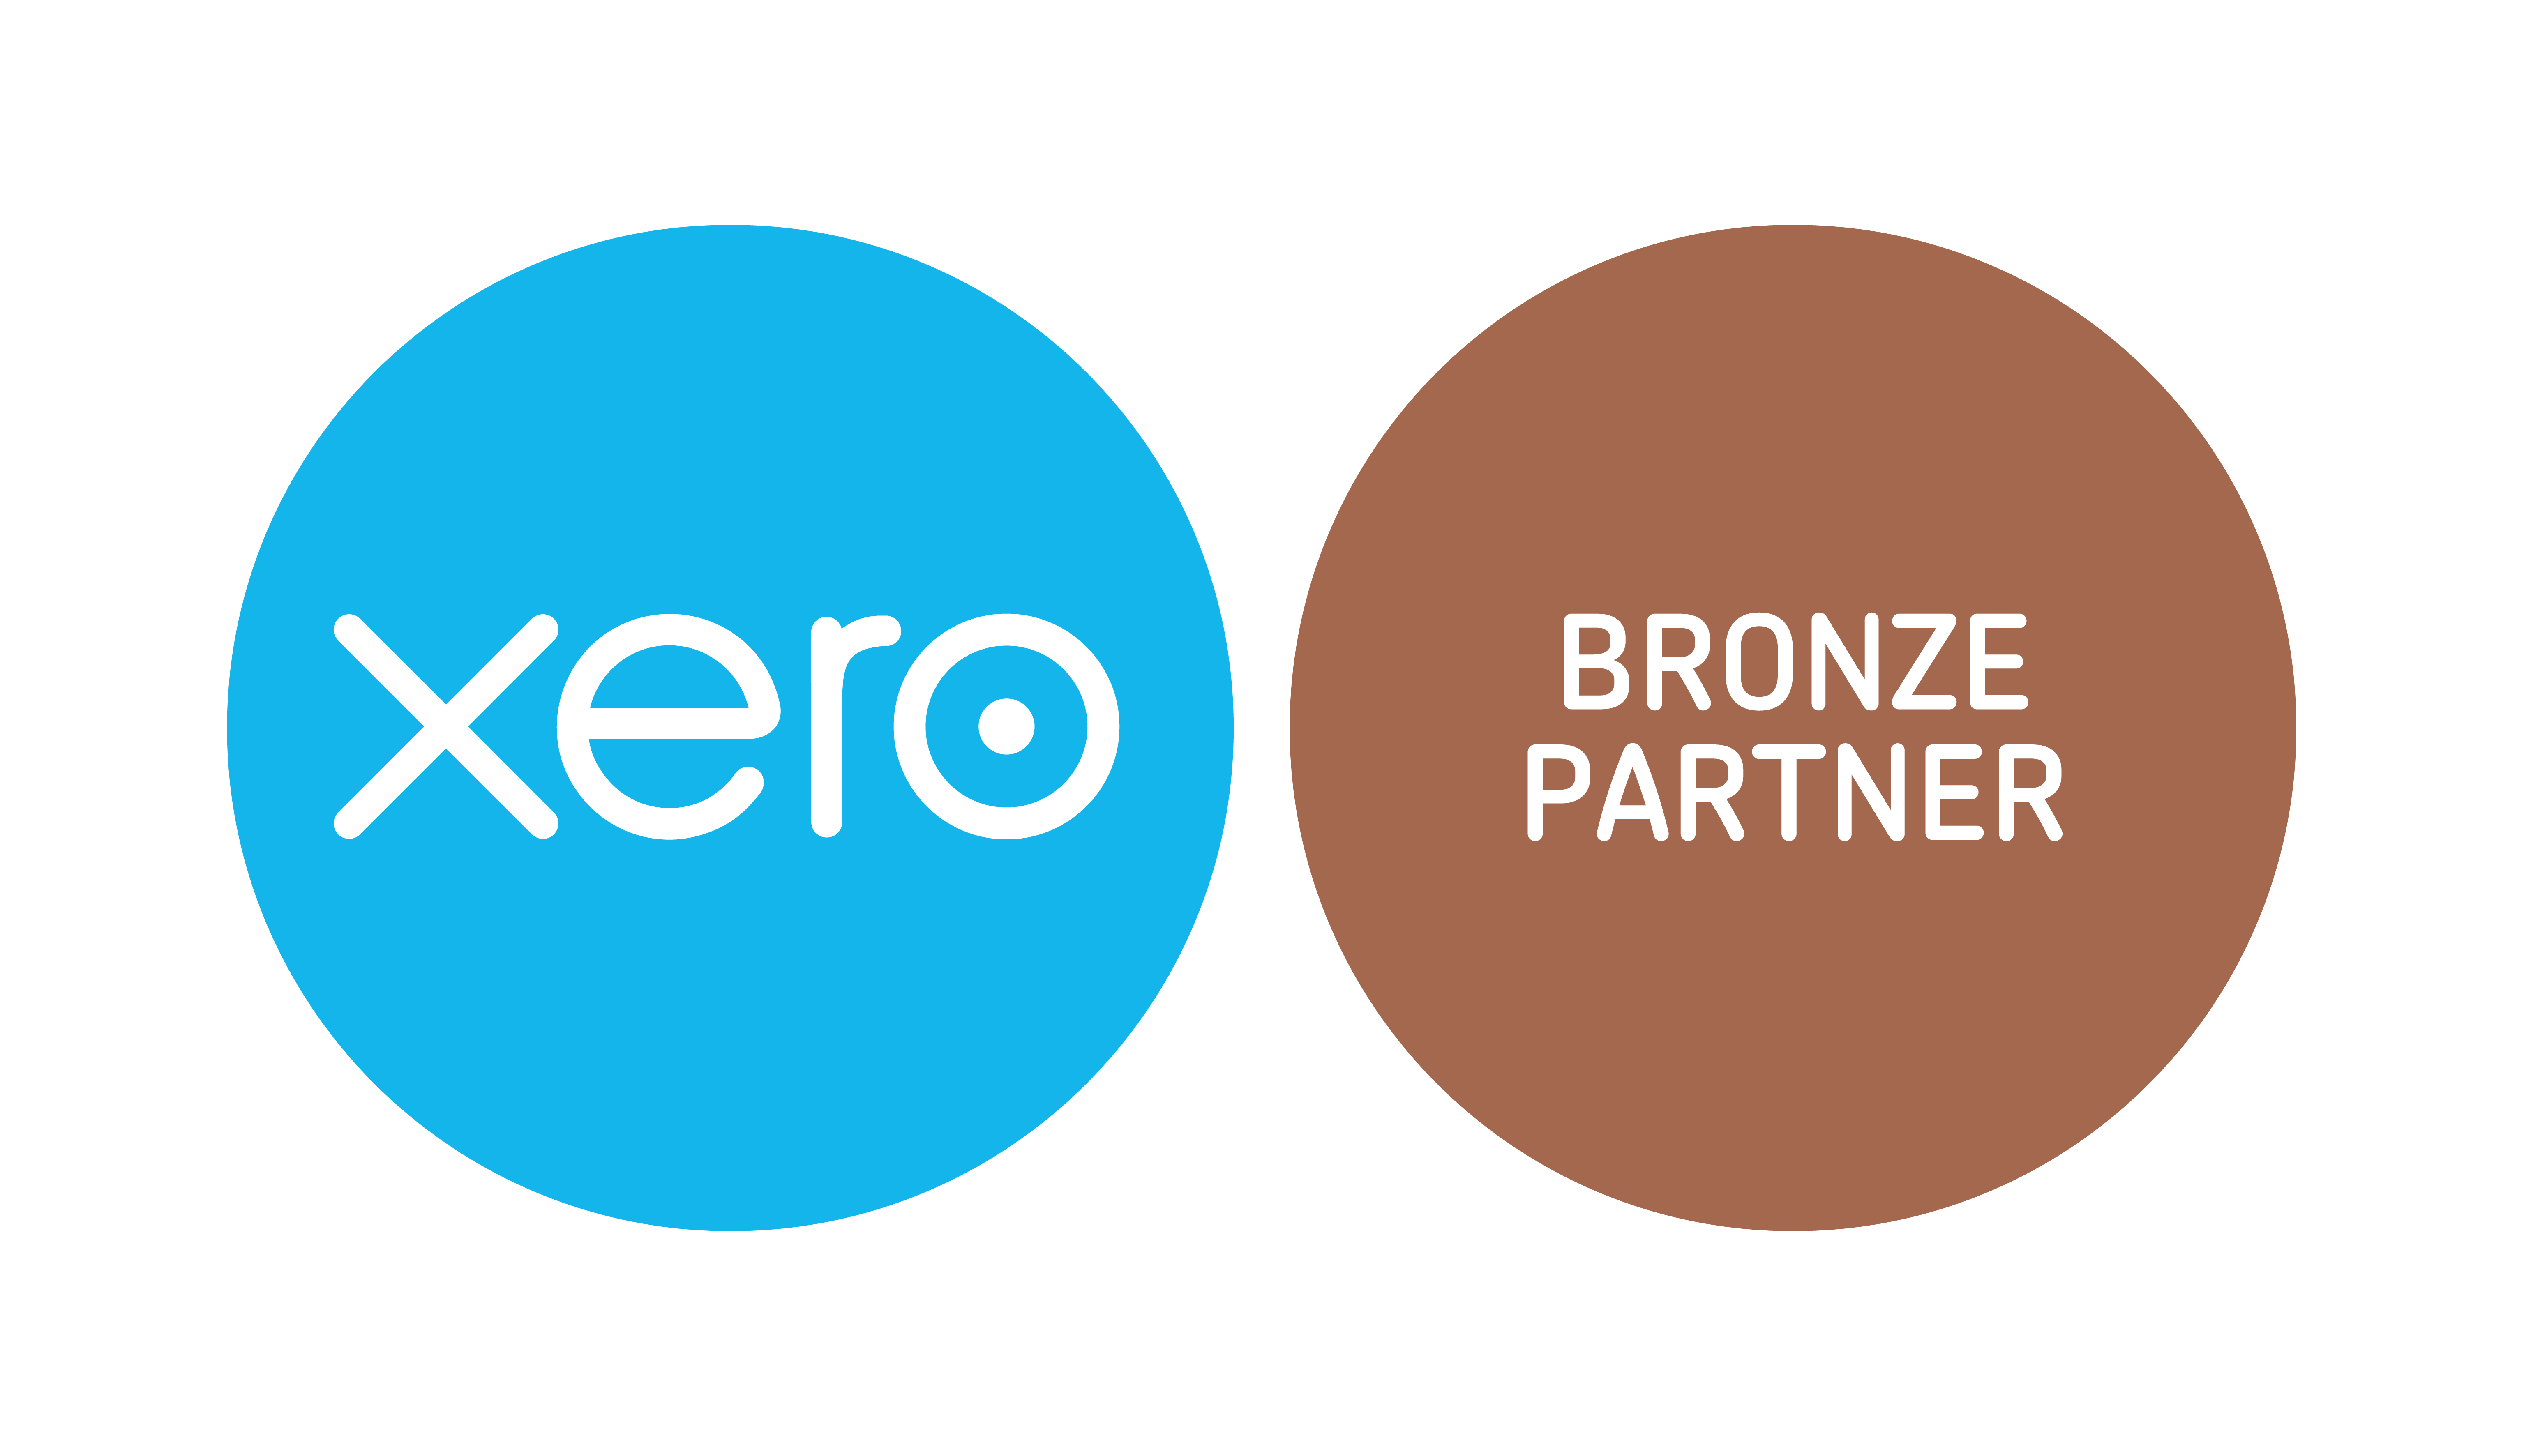 We are proud to be a Xero Bronze Partner